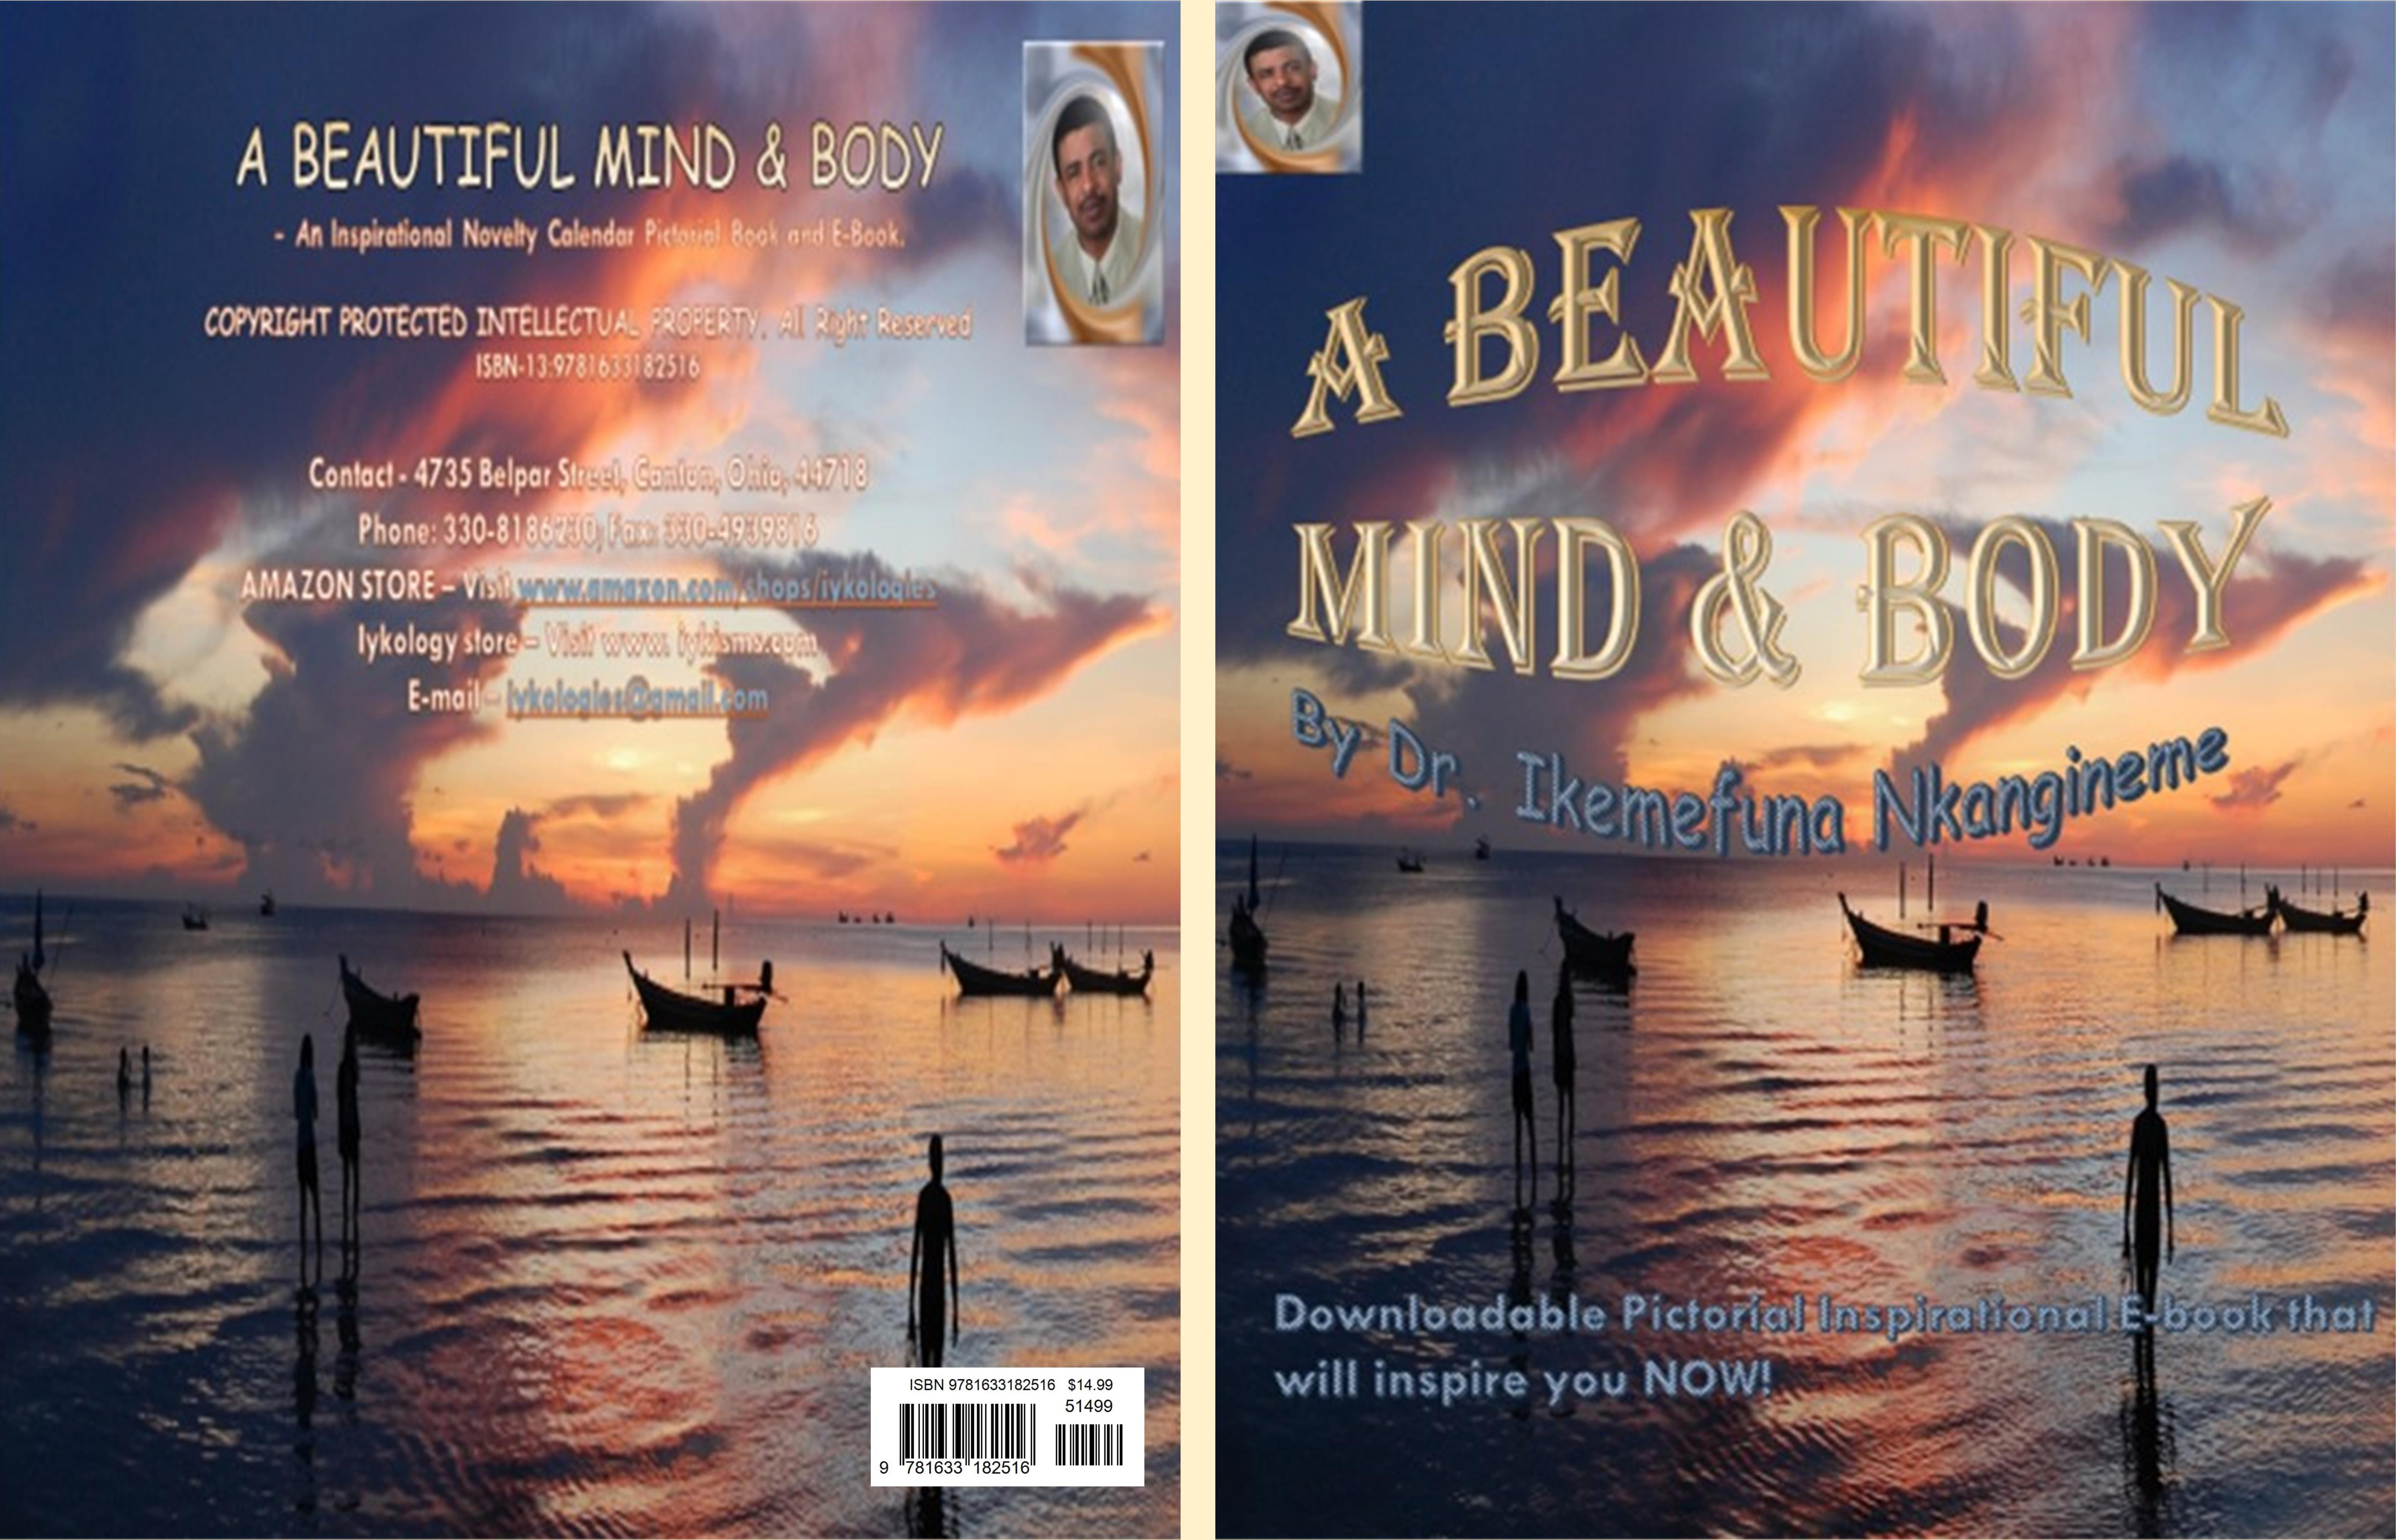 A Beautiful Mind Book Cover : A beautiful mind and body pictorial inspirational